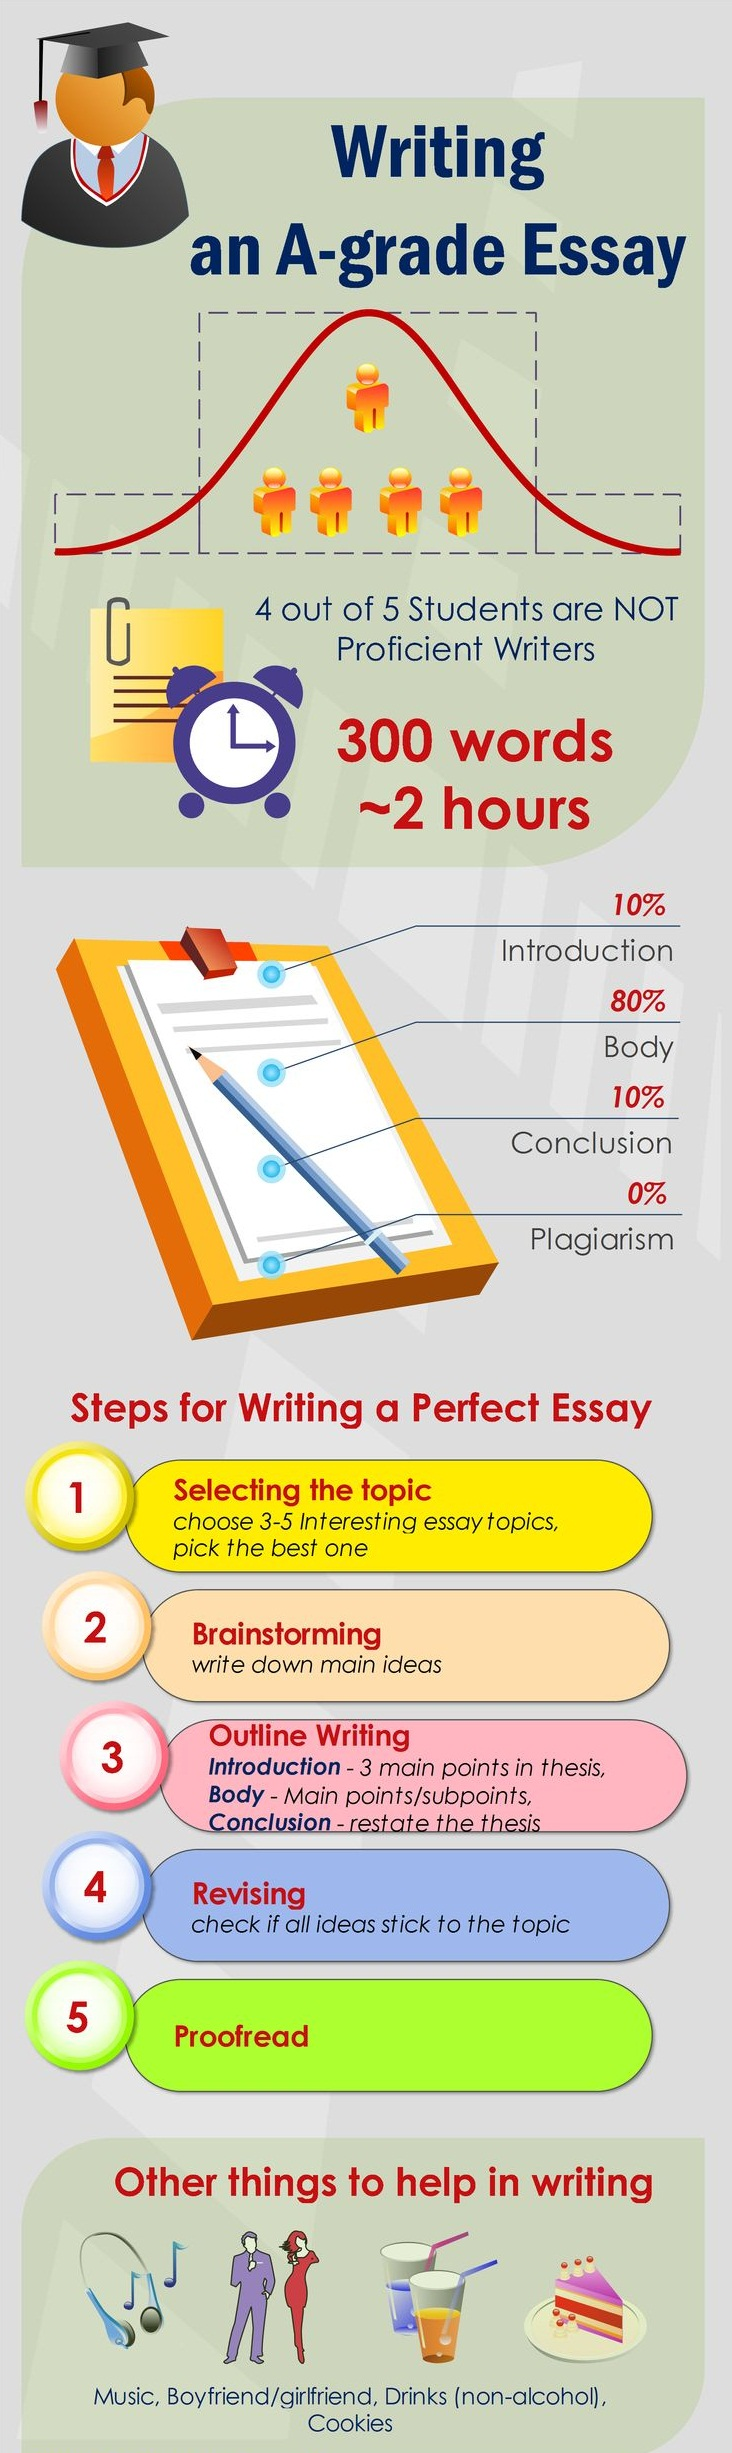 Essay writing help university